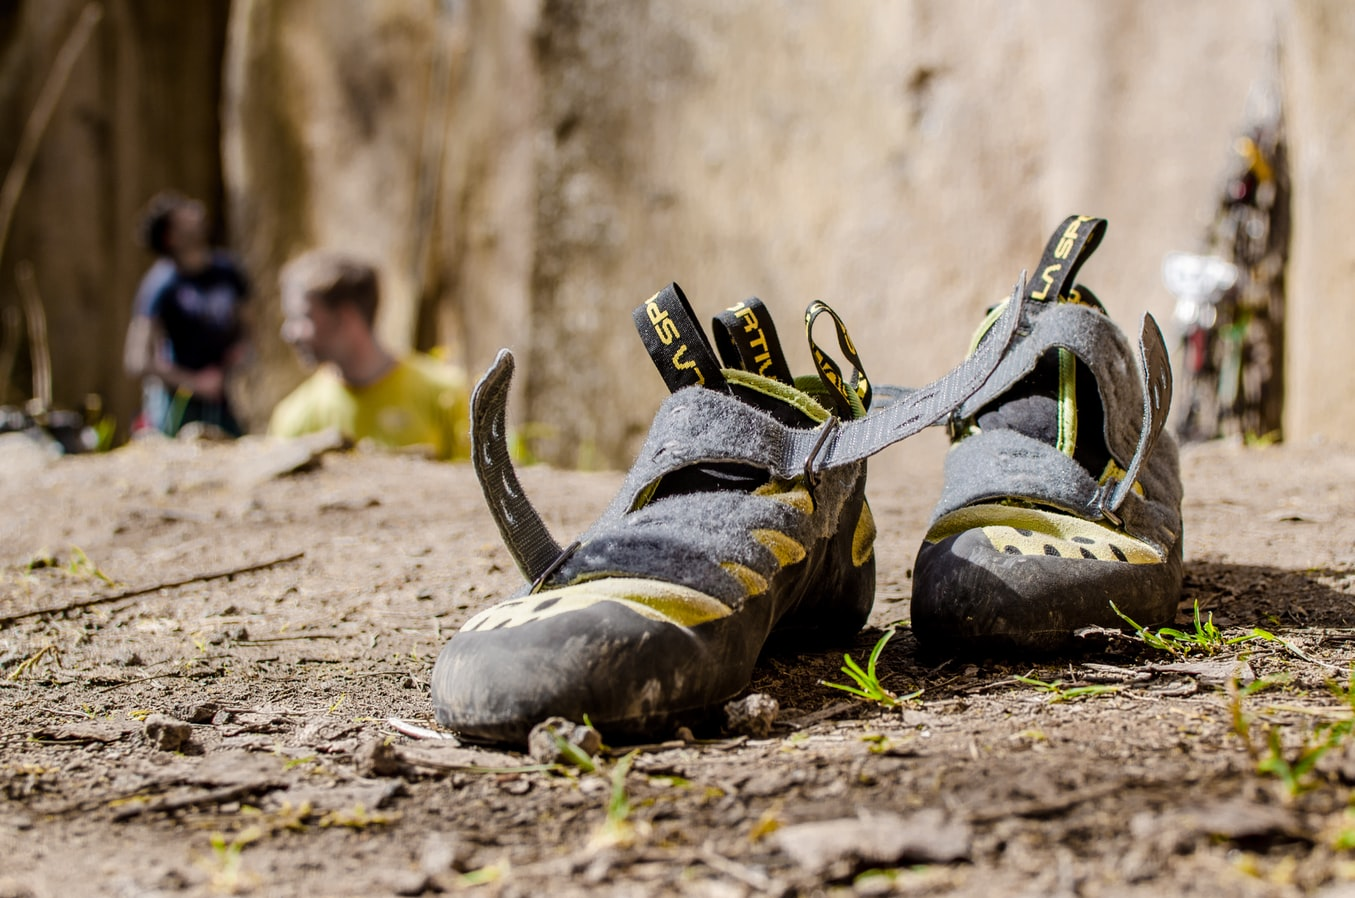 open climbing shoes on the grass